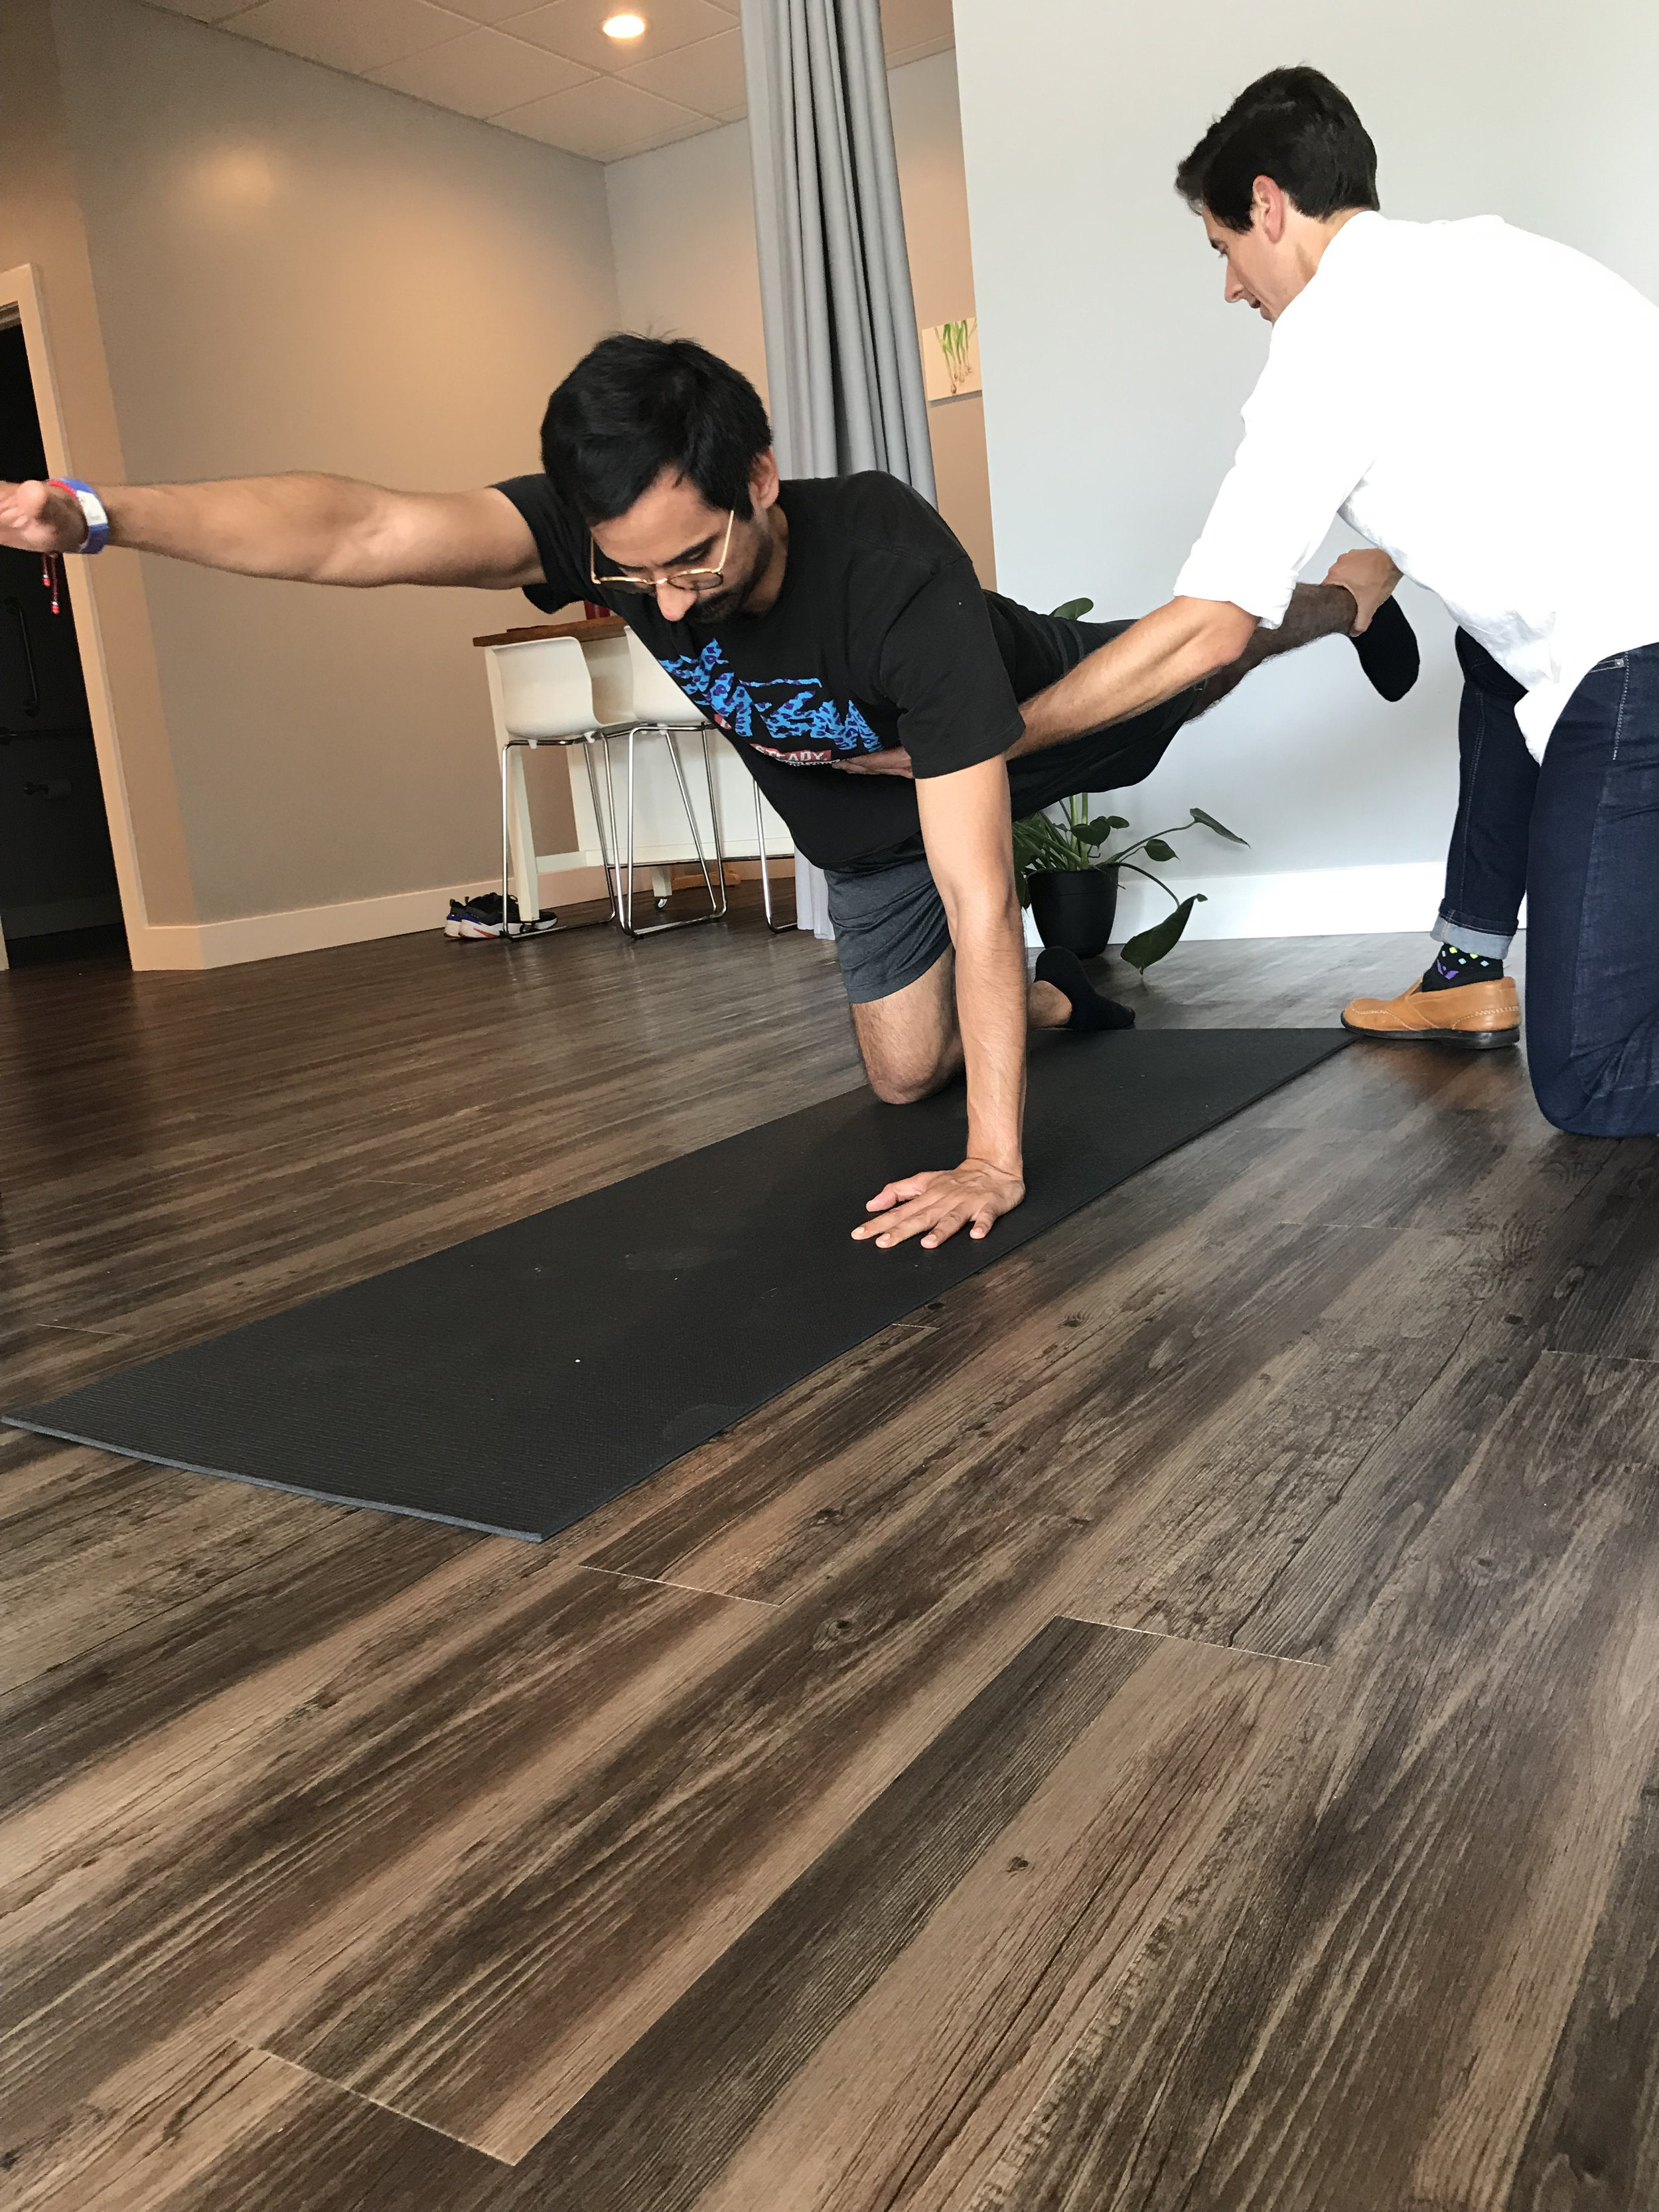 """Francisco - """"That was much needed! Thanks MountainFit Wellness. The body activation and alignment has me feeling alive again."""""""